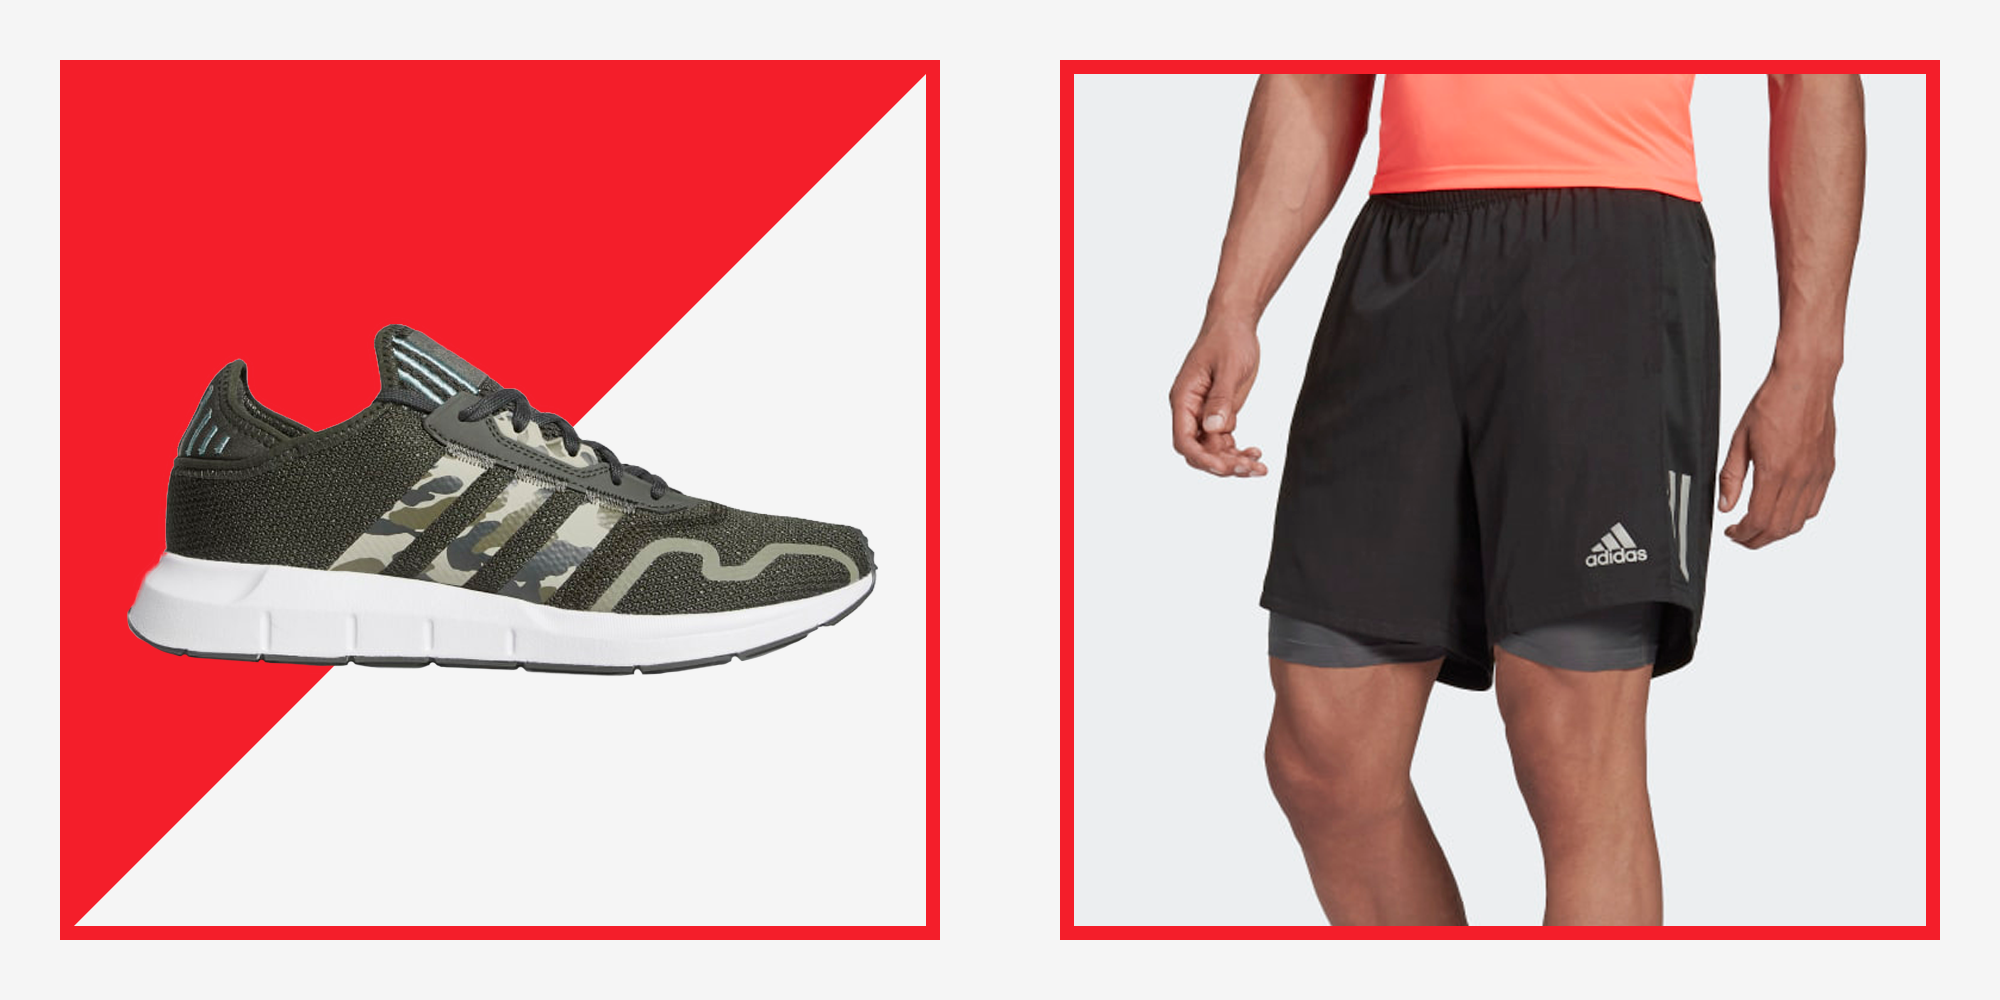 Adidas' Extended Cyber Monday Sale